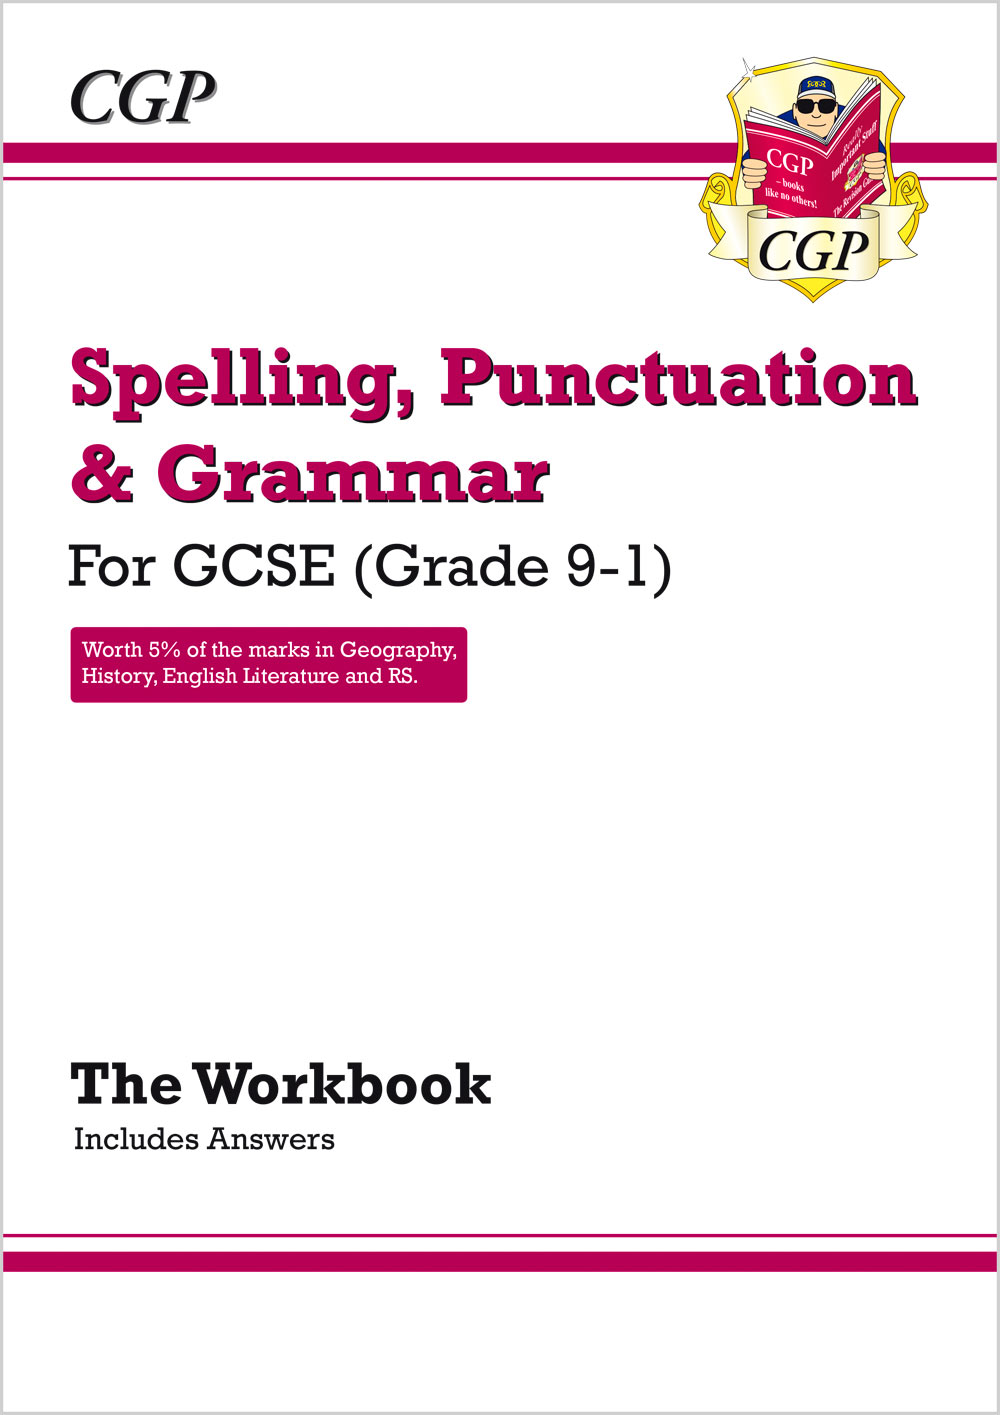 EGW42 - Spelling, Punctuation and Grammar for Grade 9-1 GCSE Workbook (includes Answers)